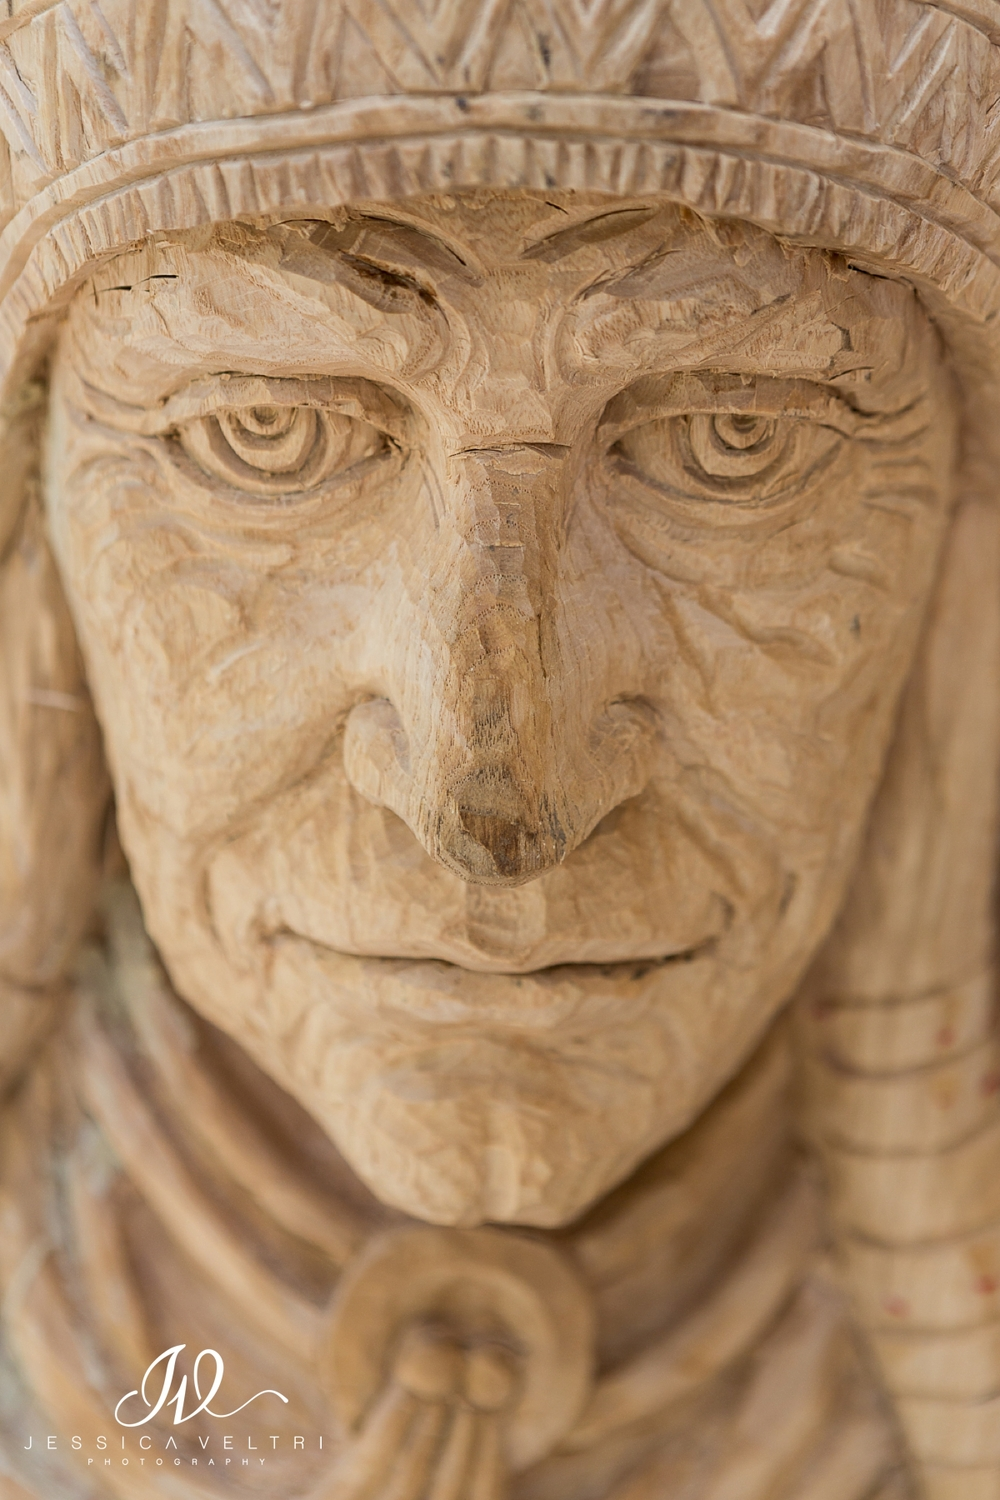 Wood carving of a Native American at the Philippines Embassy